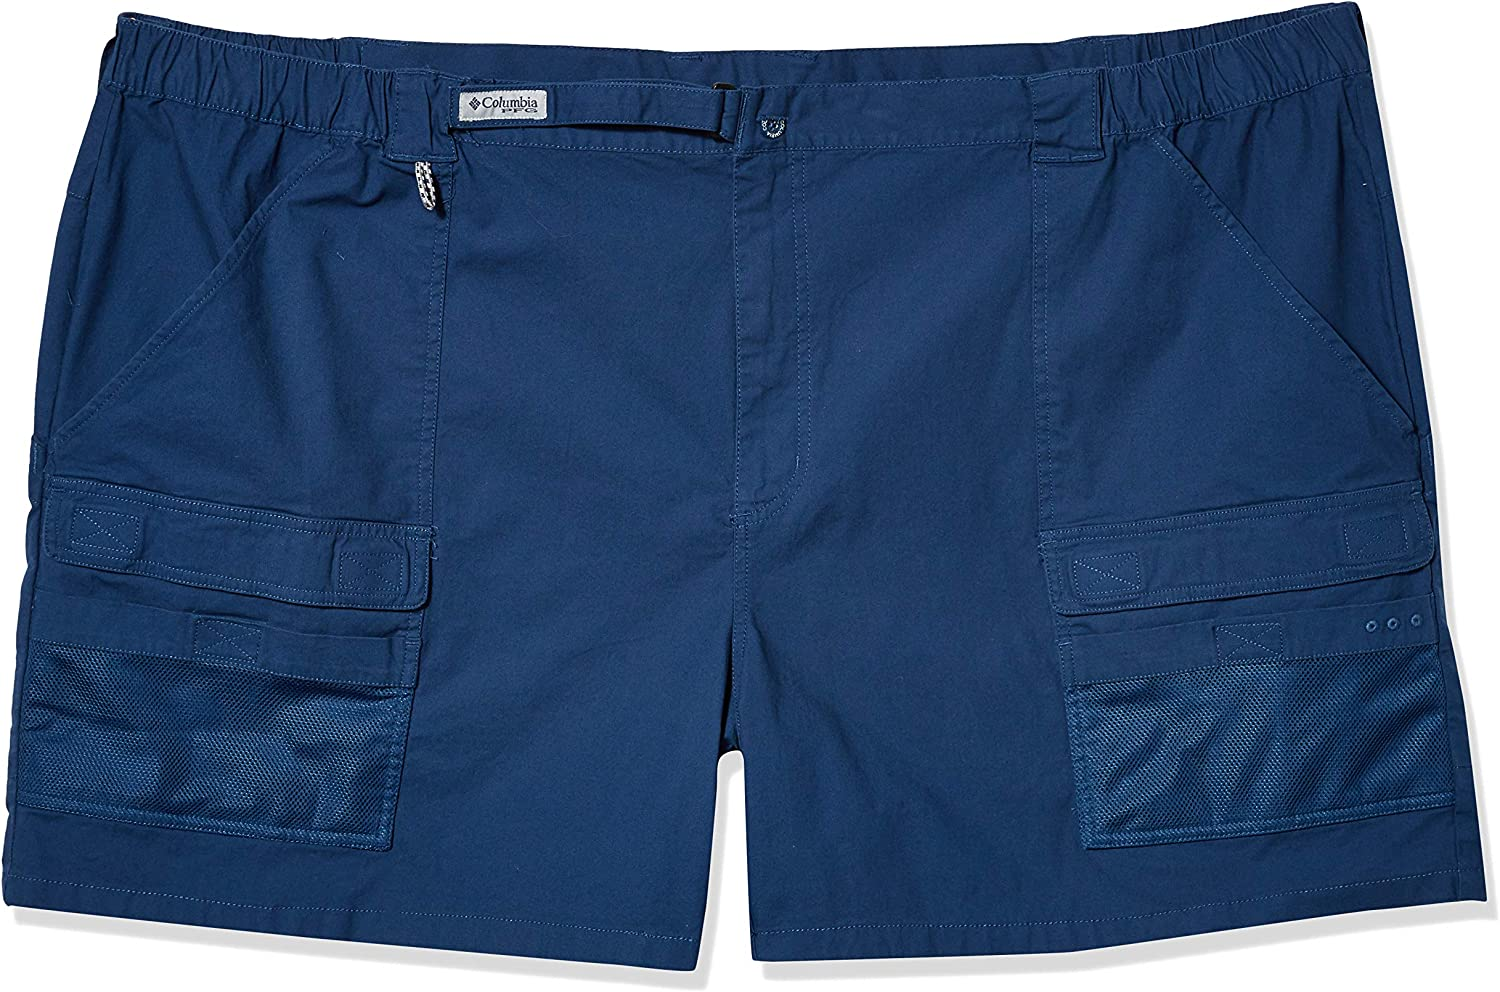 Columbia Men's Half Moon III Short